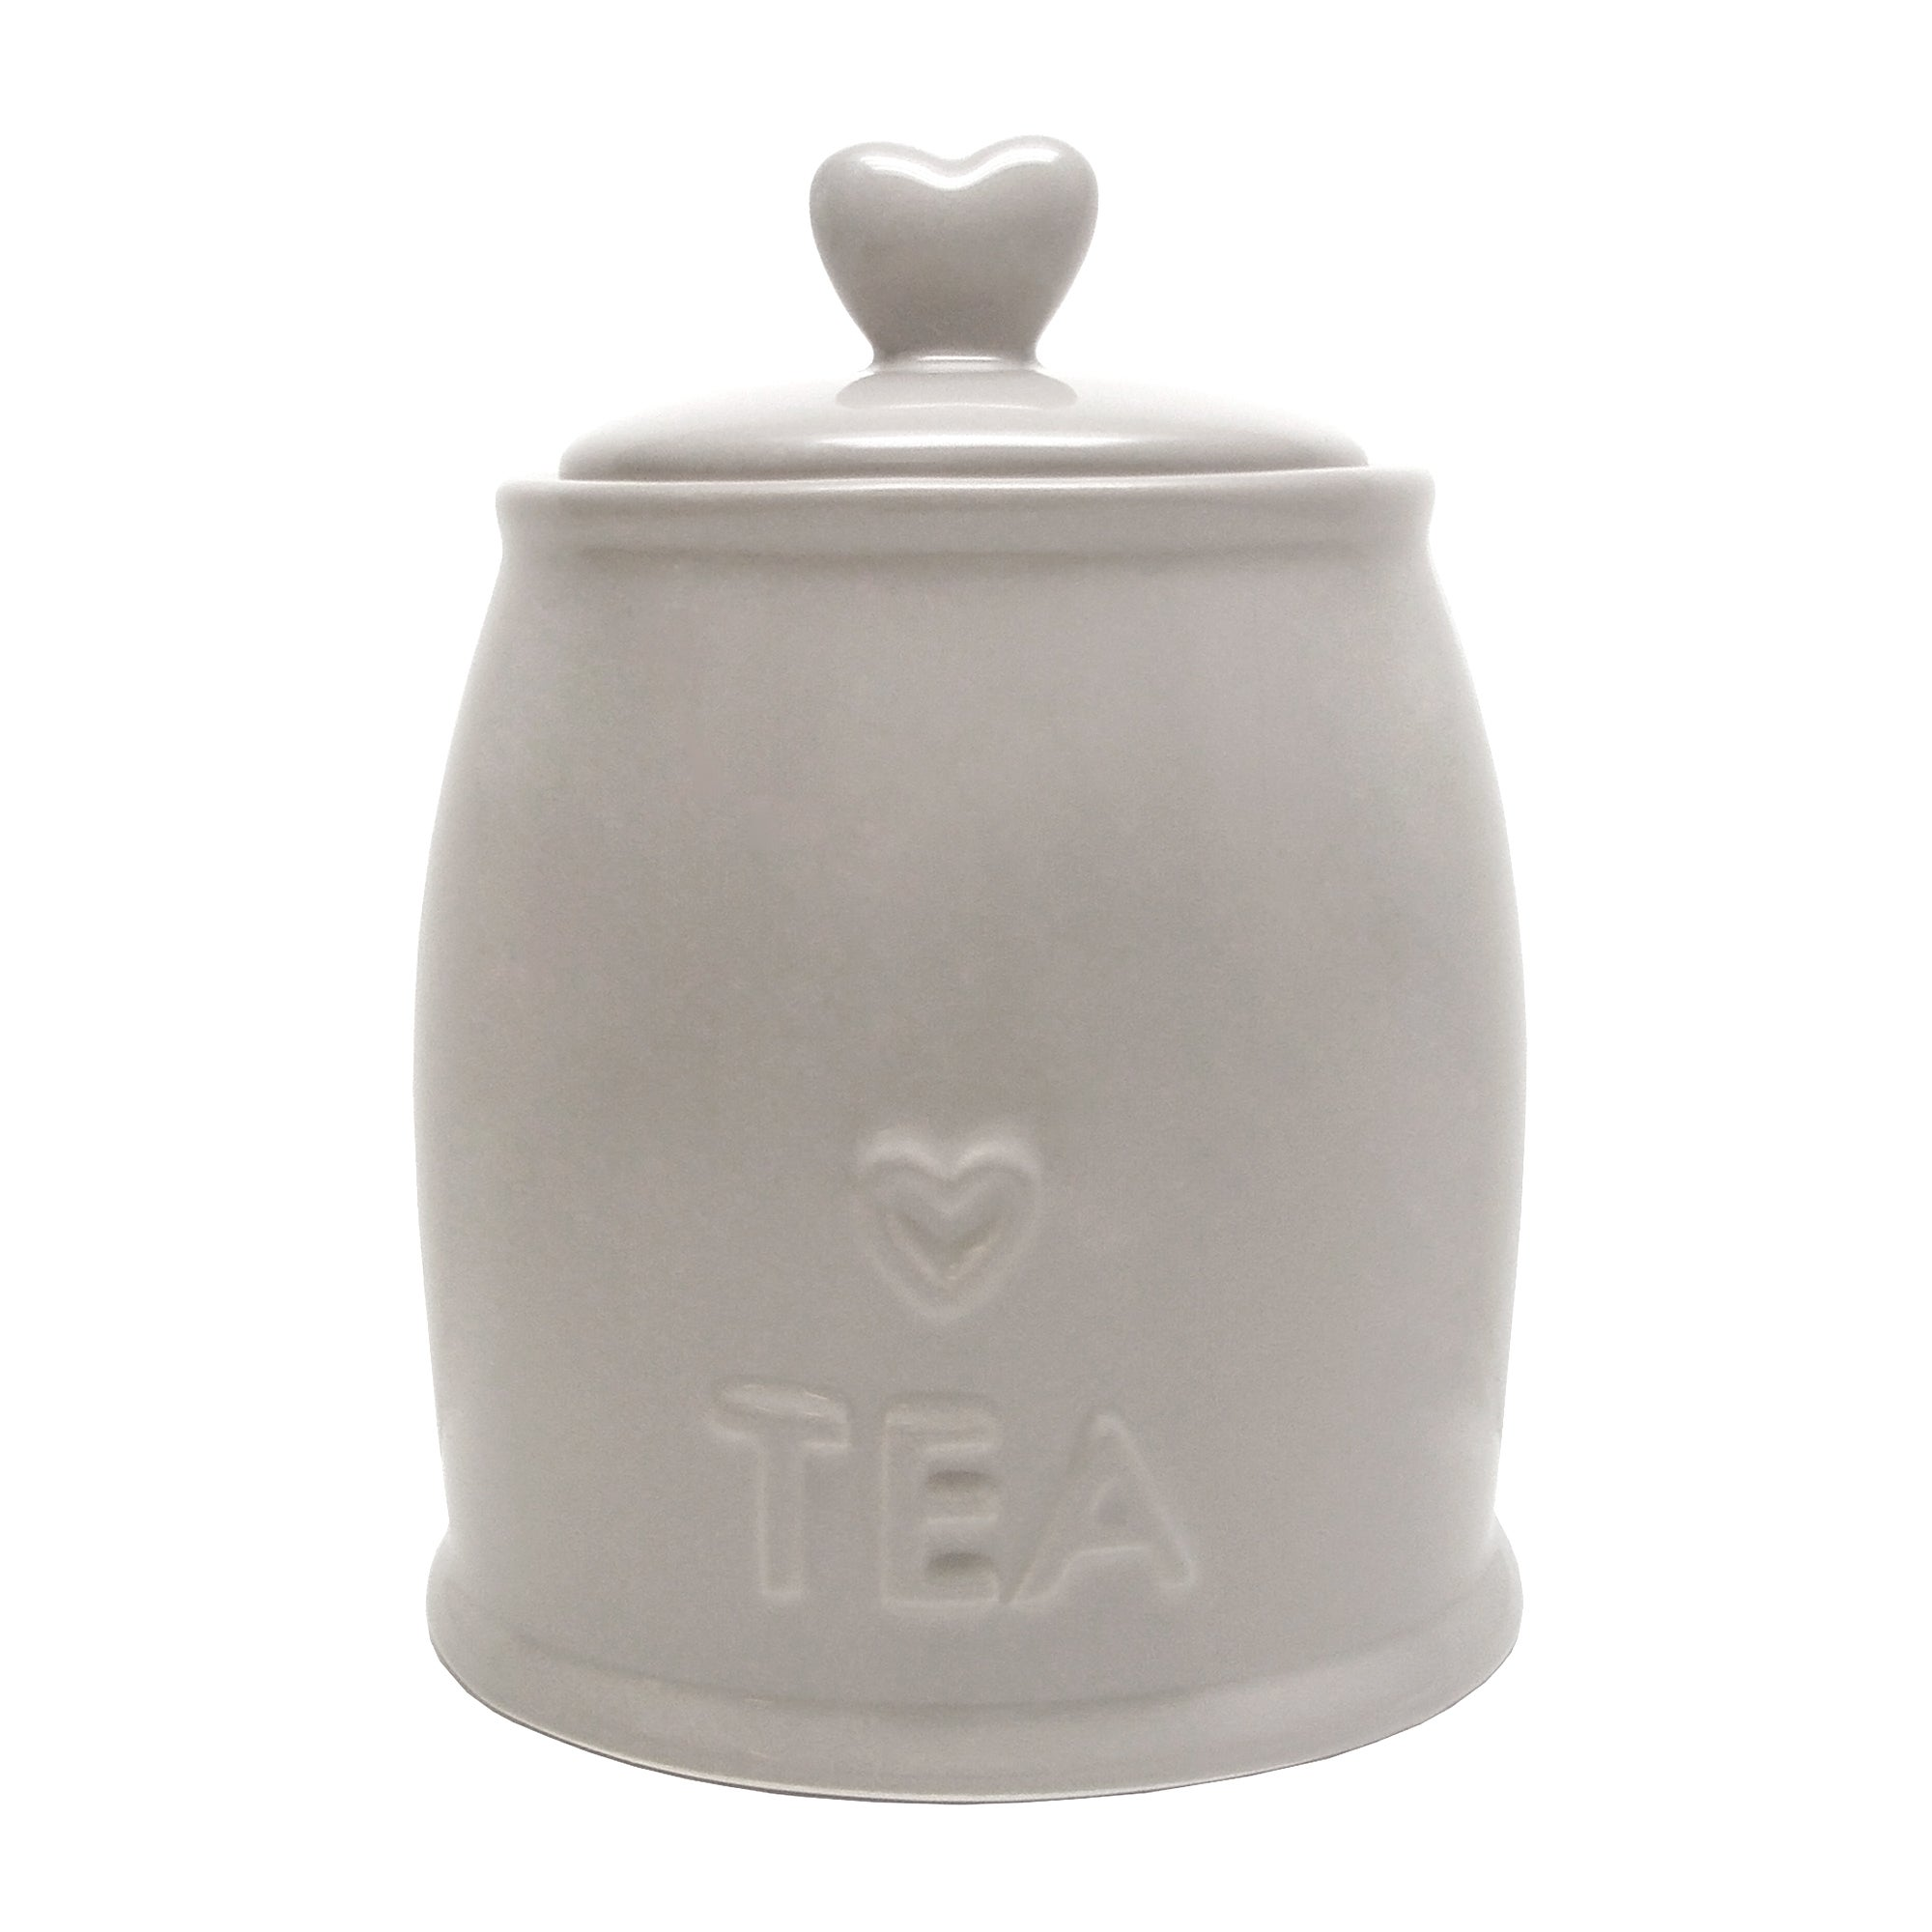 Taupe Country Heart Collection Tea Storage Jar